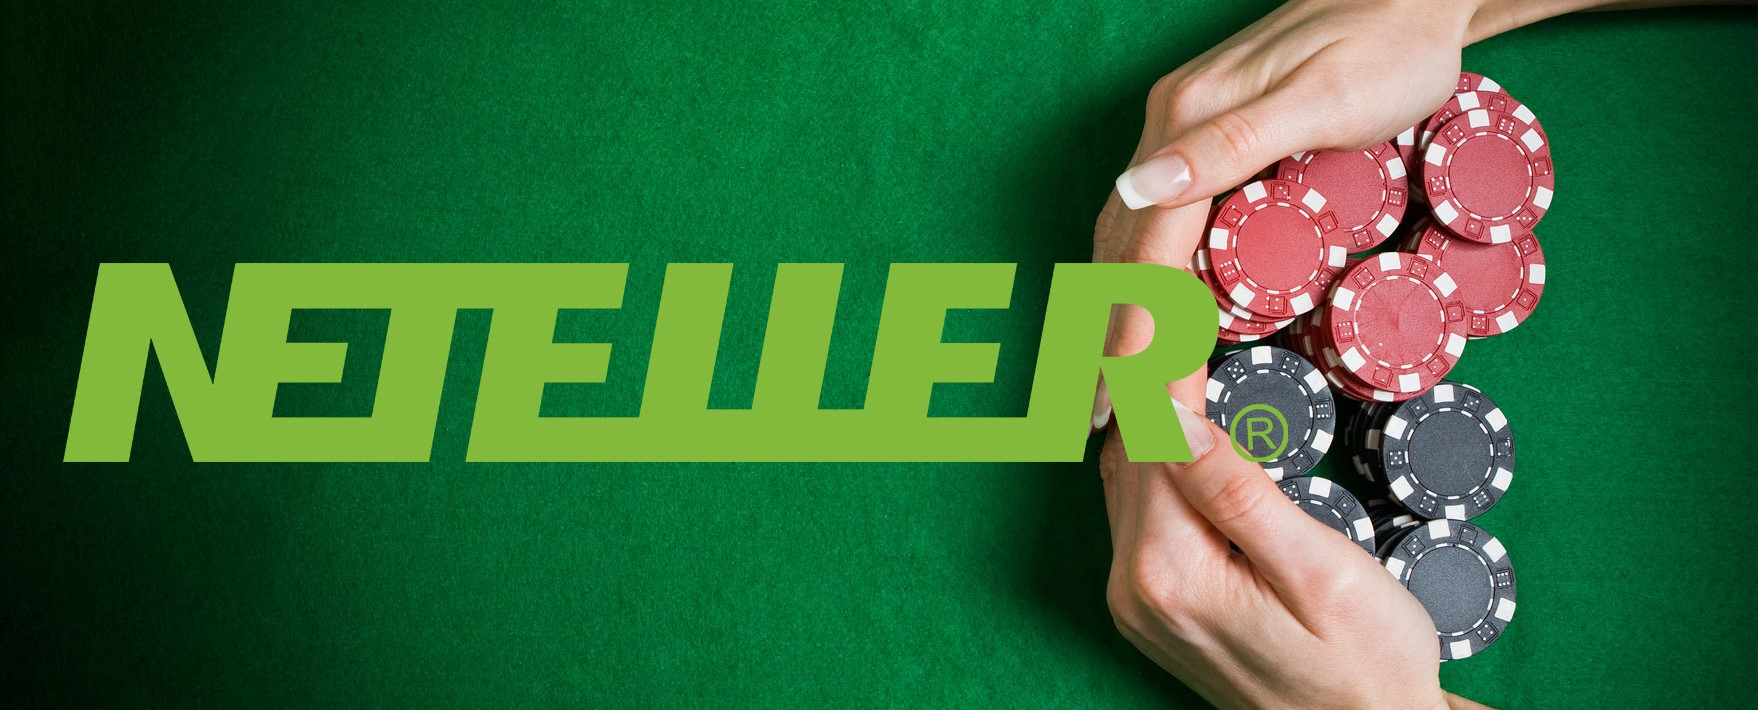 Neteller online casinos in Canada